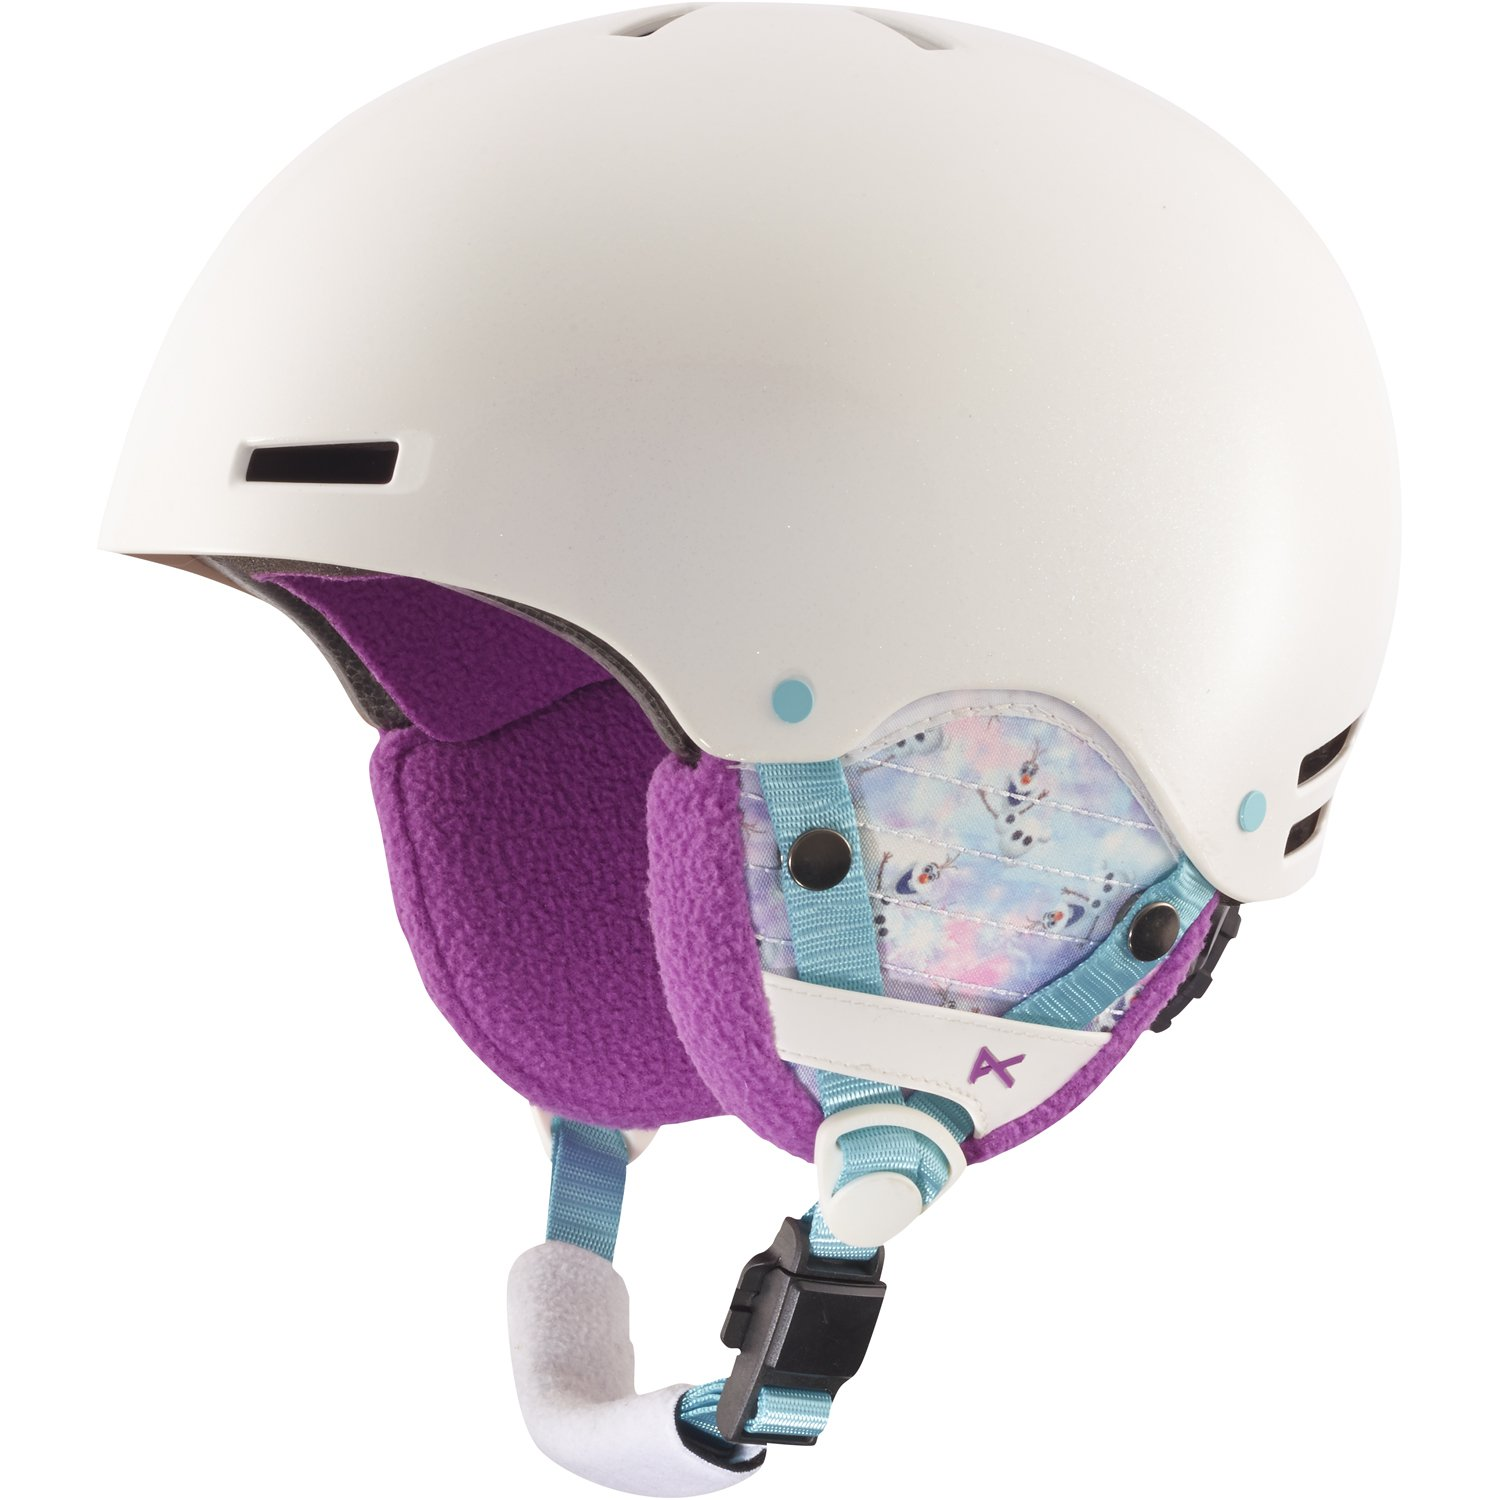 Anon Rime Youth Snow Helmet by Anon